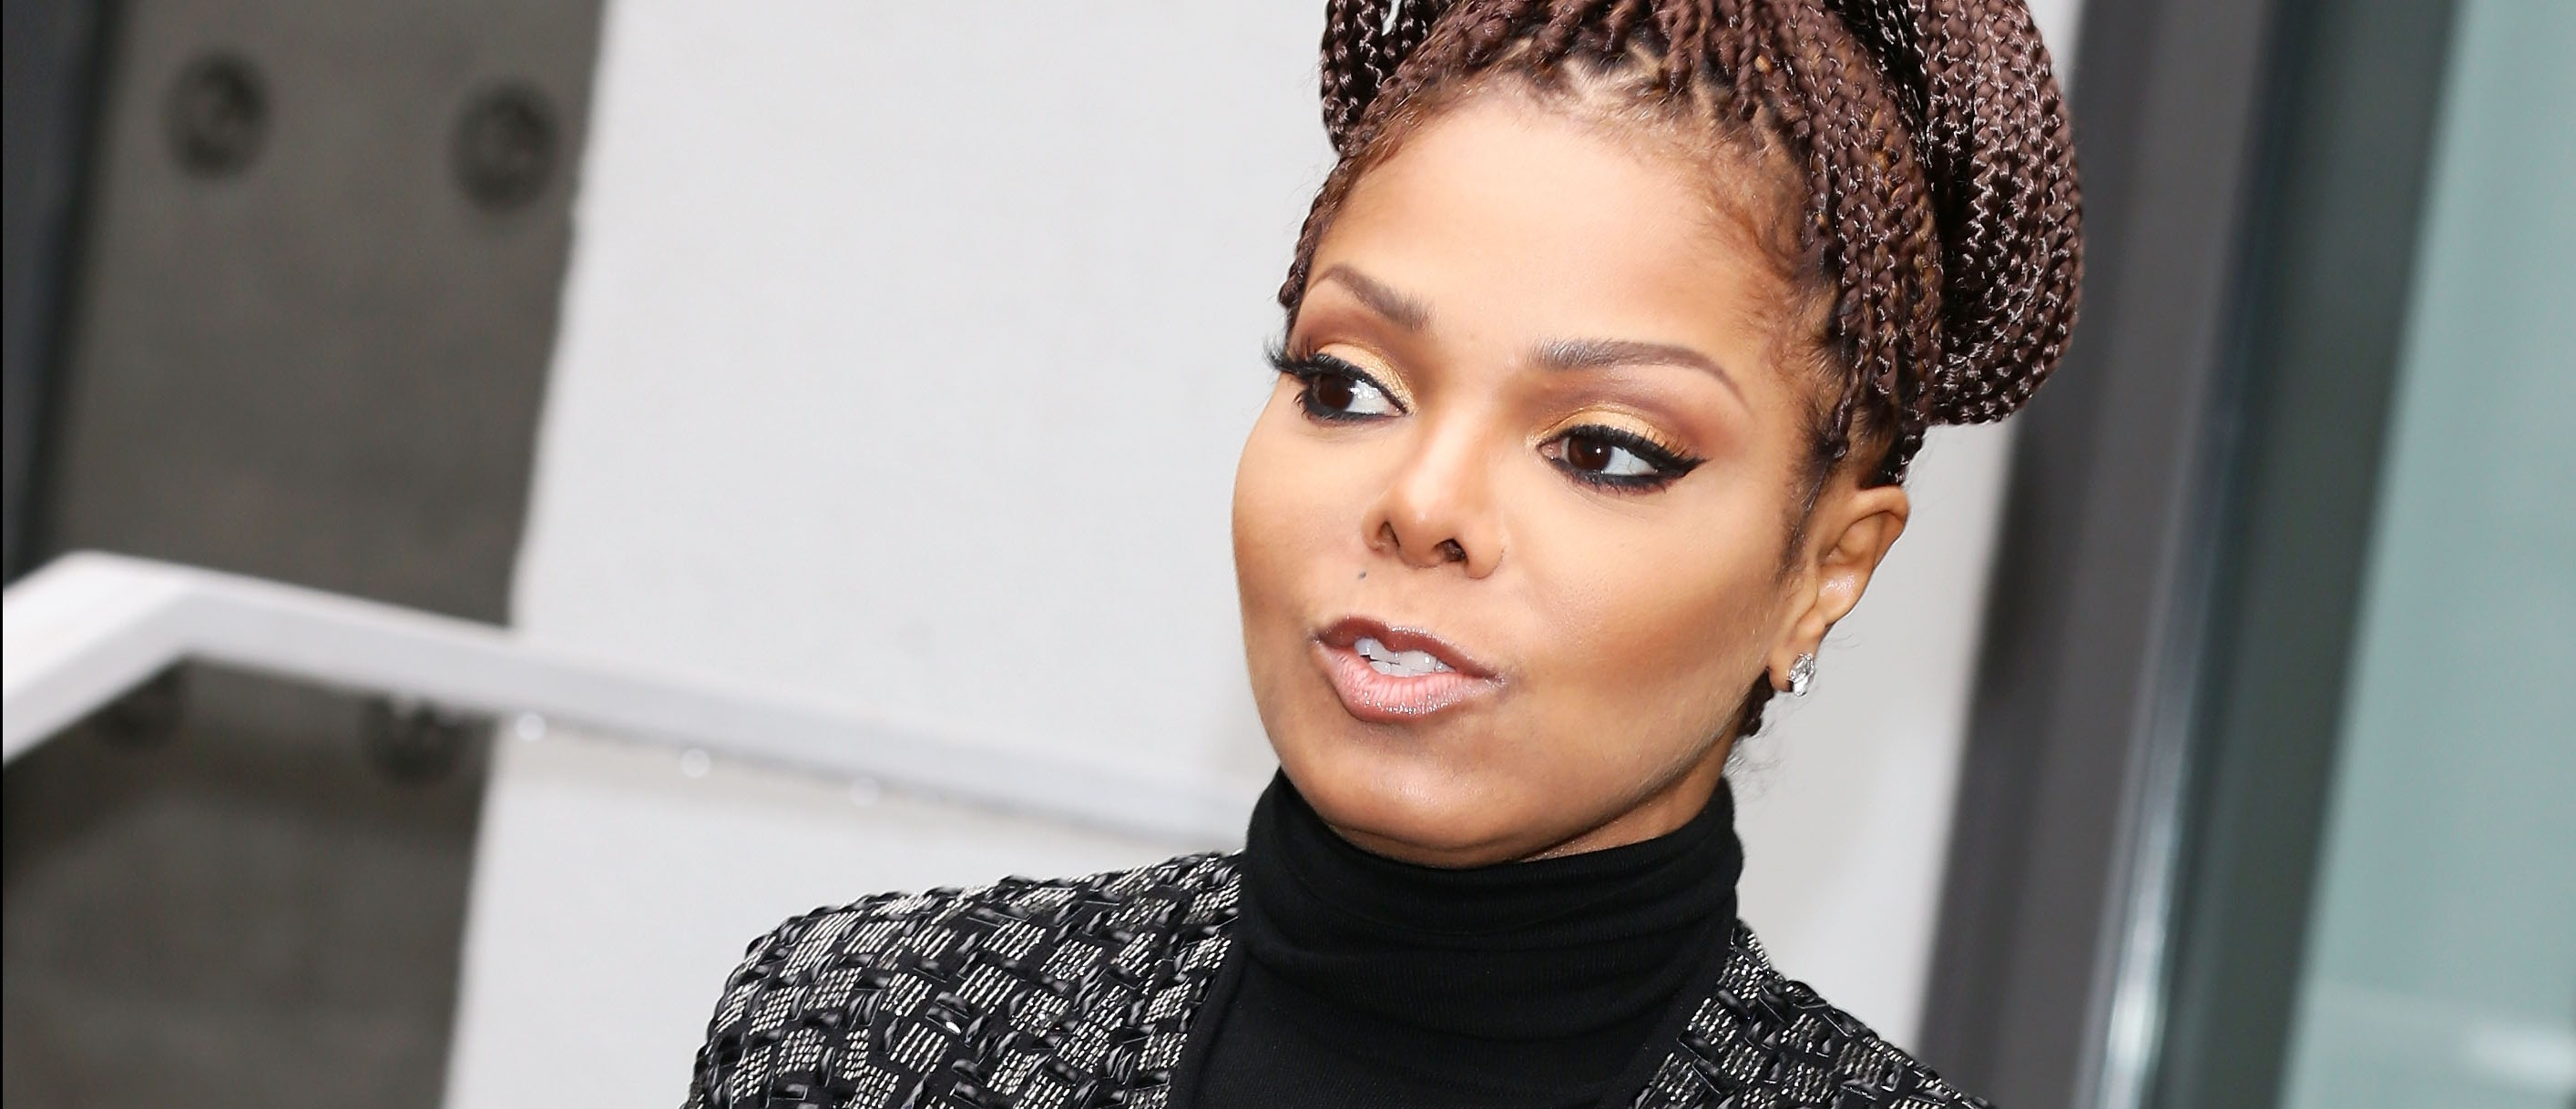 Janet Jackson addresses rumors she has cancer.(Photo: Vittorio Zunino Celotto/Getty Images)